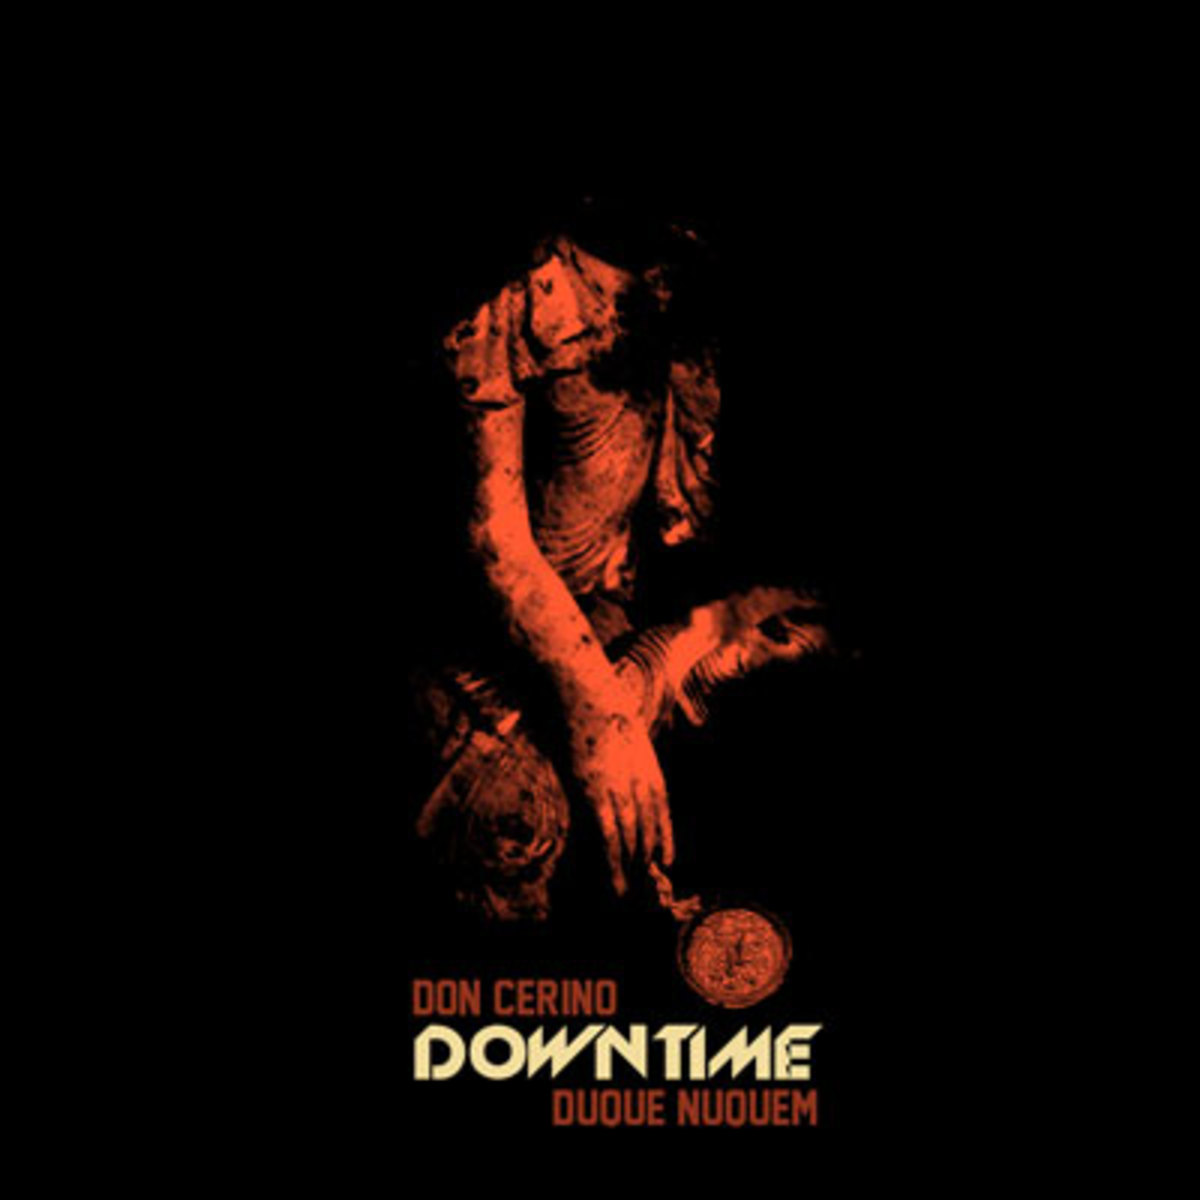 doncerino-downtime.jpg